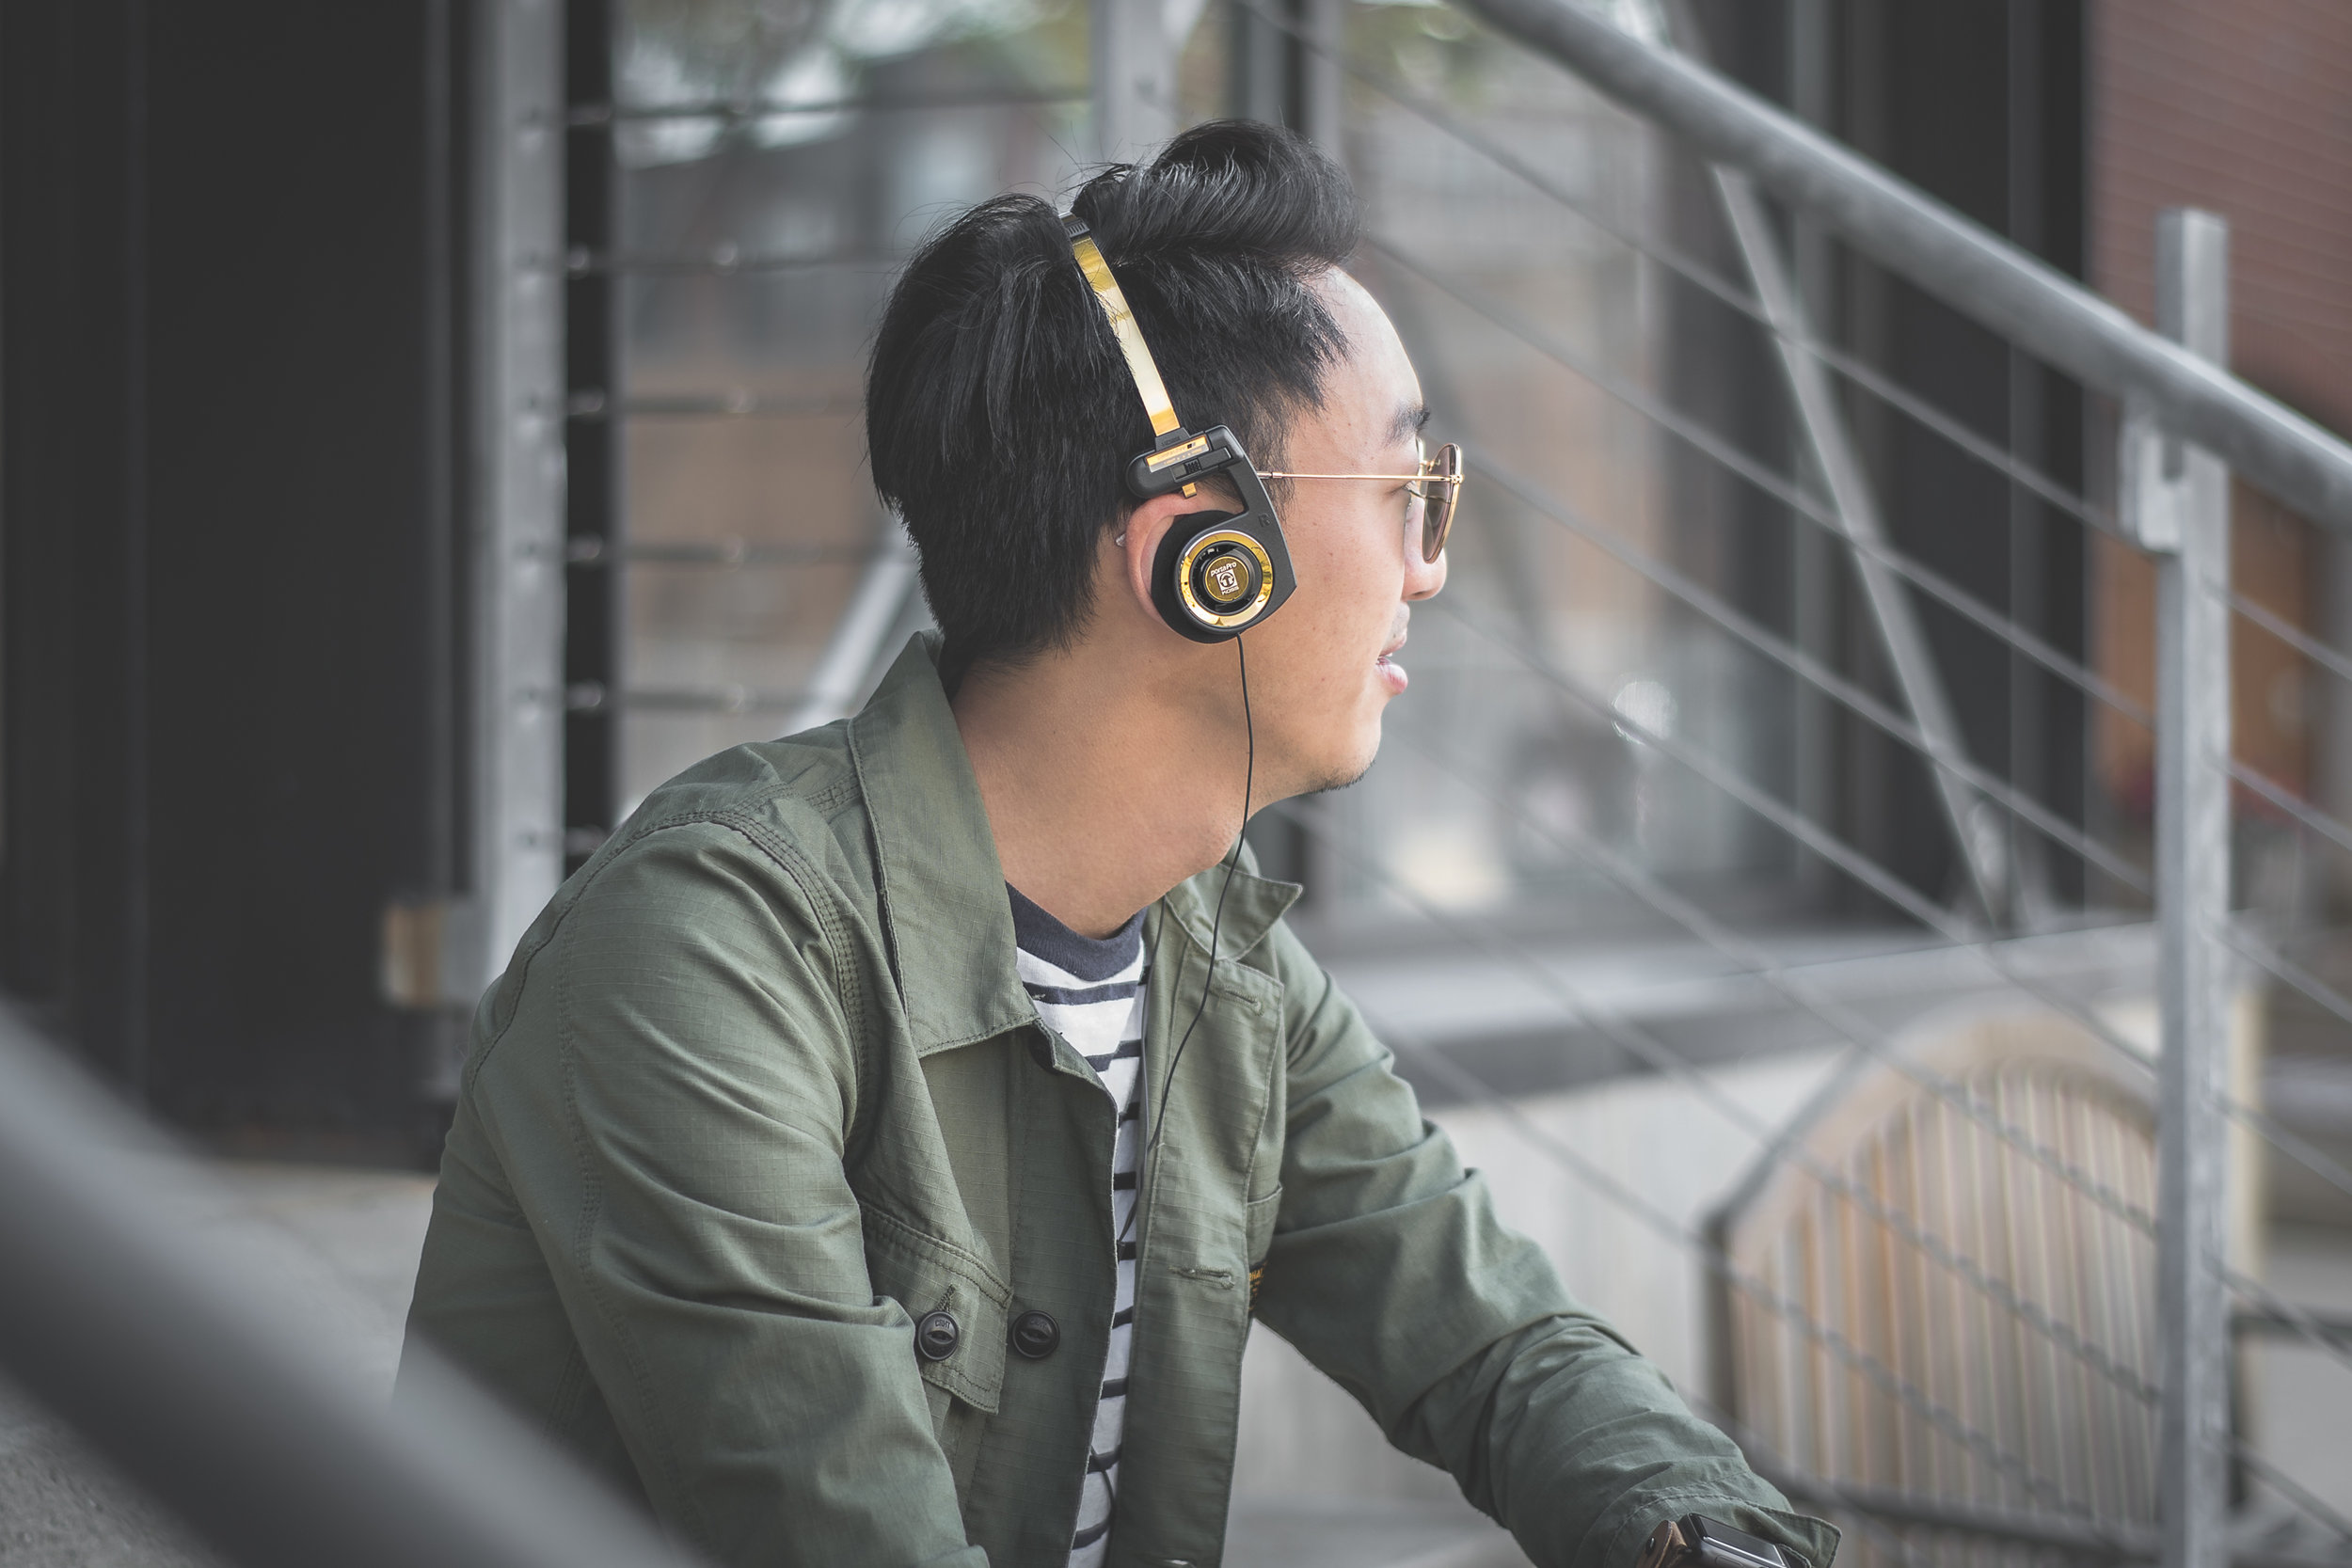 These headphones are a special edition of the Koss classic,  Porta Pro . Want a pair of your own? Use my code: EDD2017 for 20% off + Free Shipping!